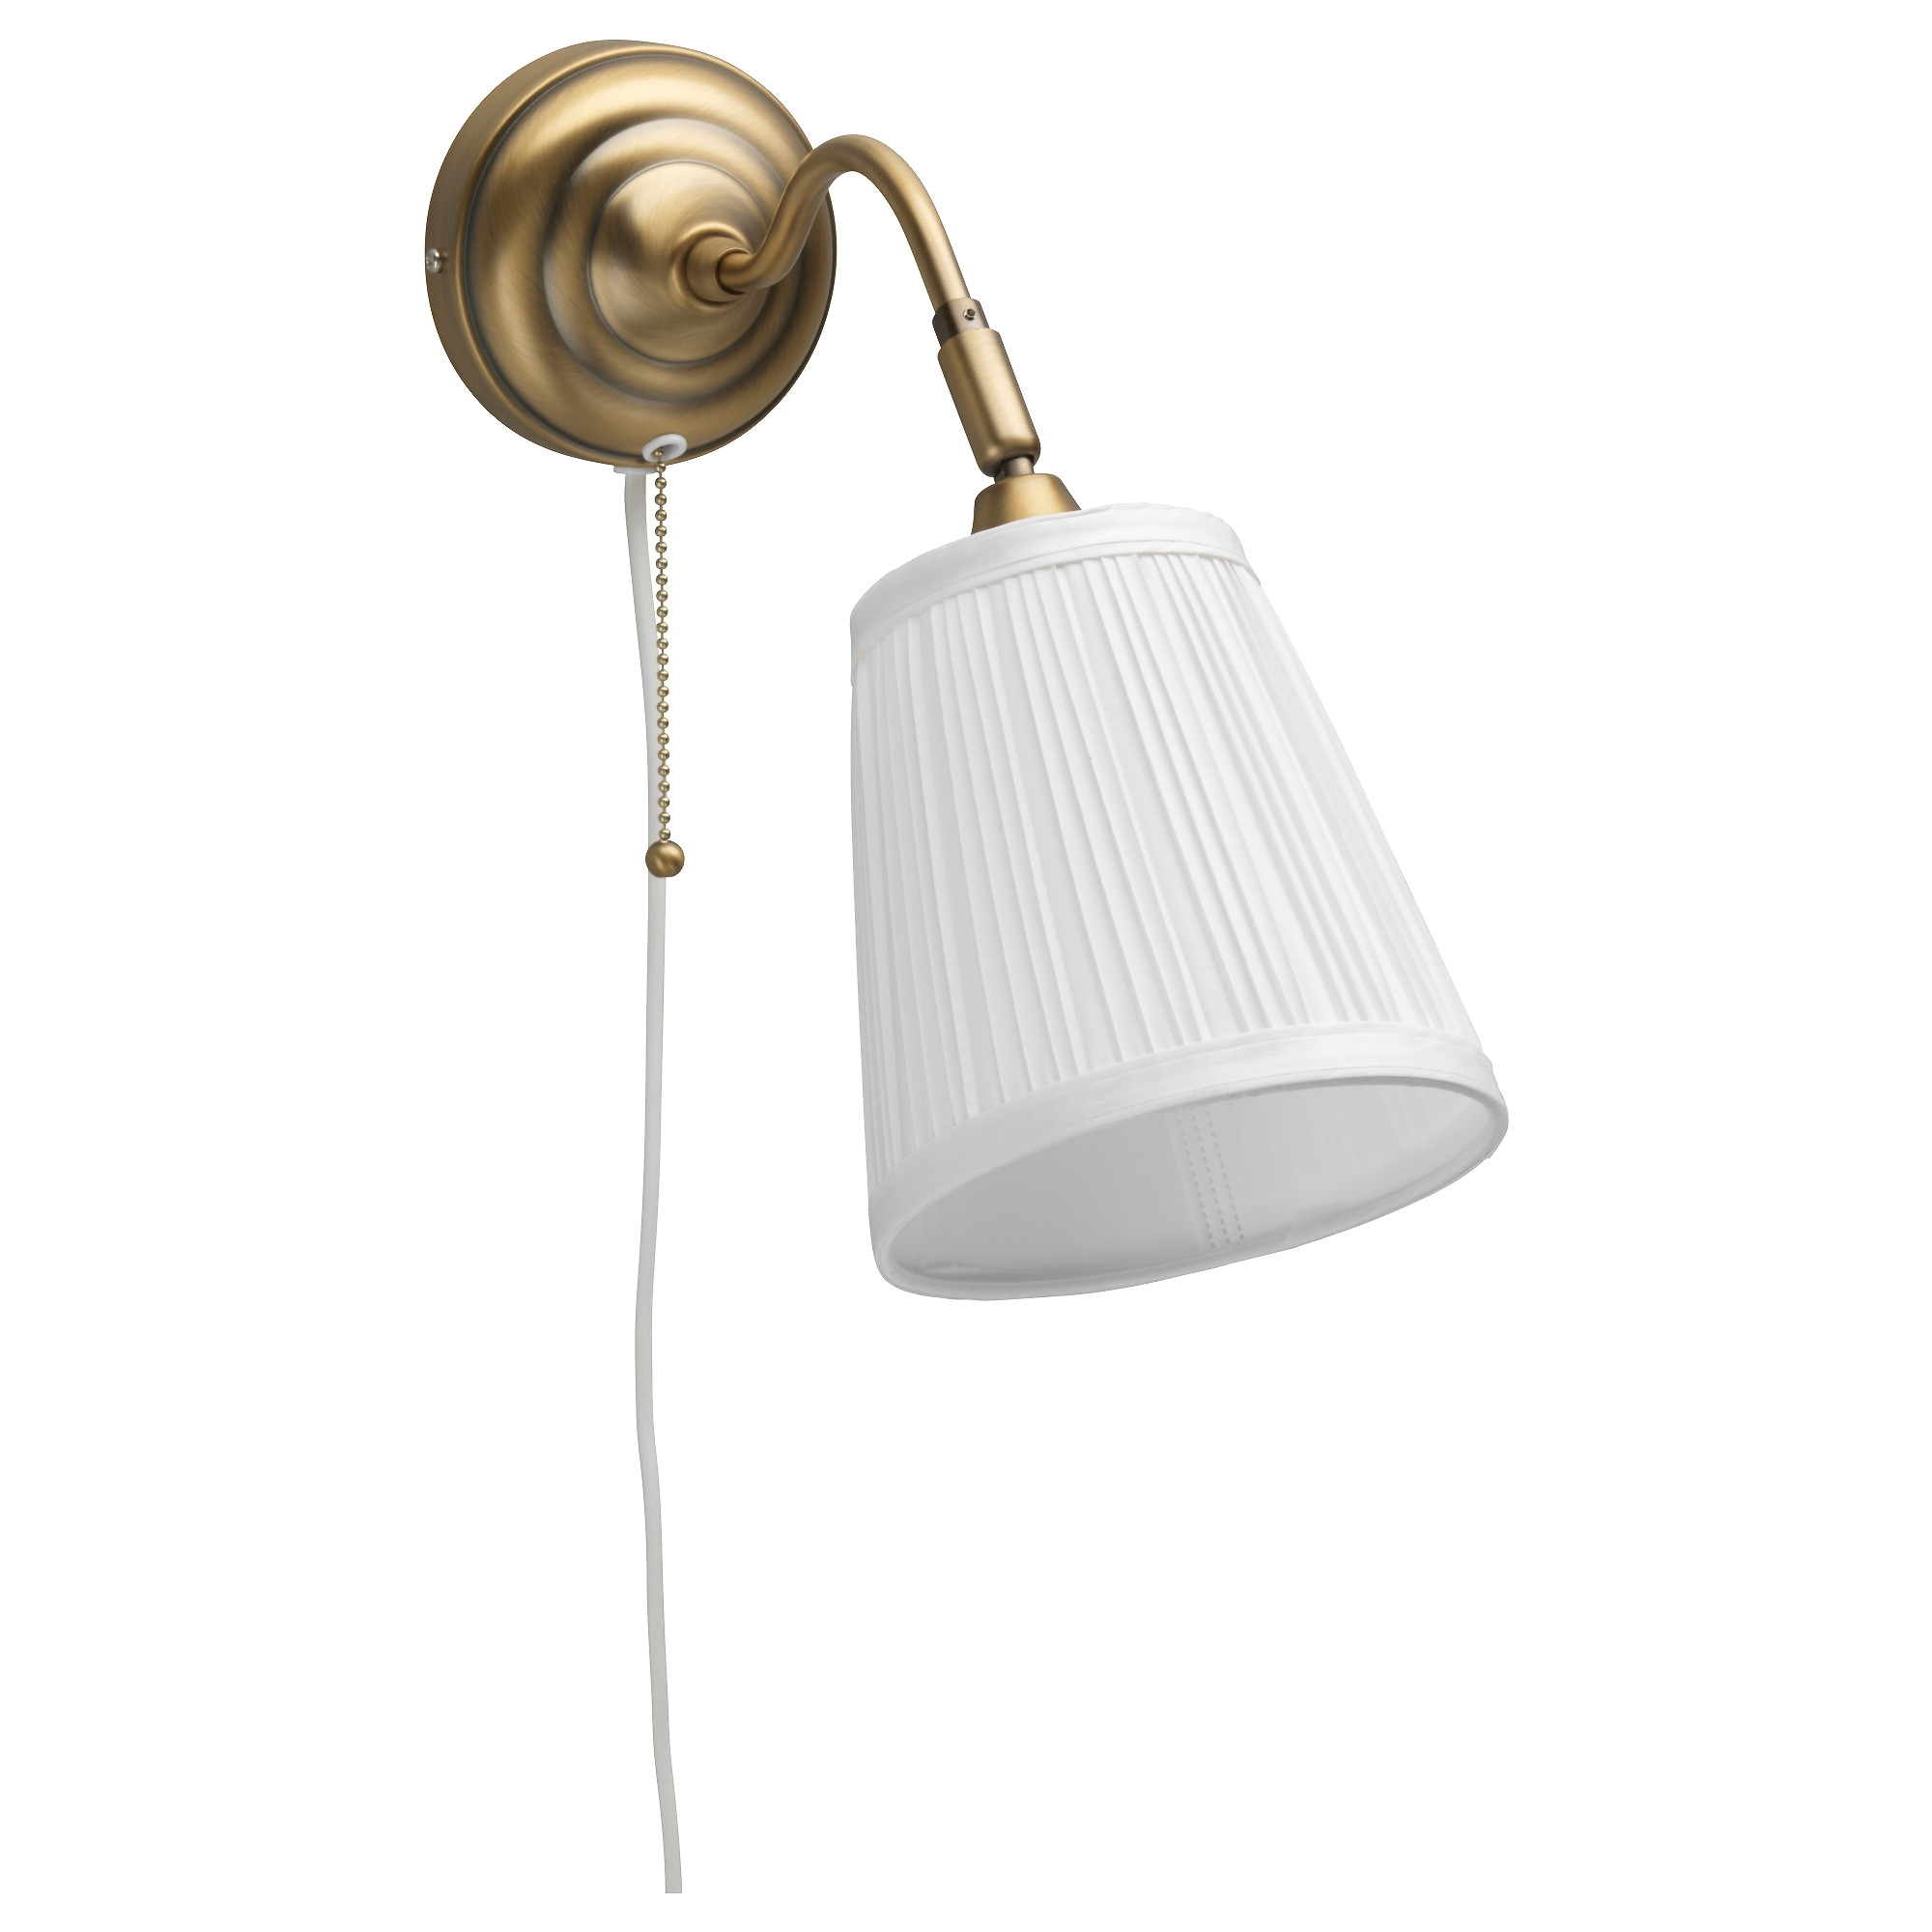 Fashionable Wall Lights And Uplighters (View 9 of 20)